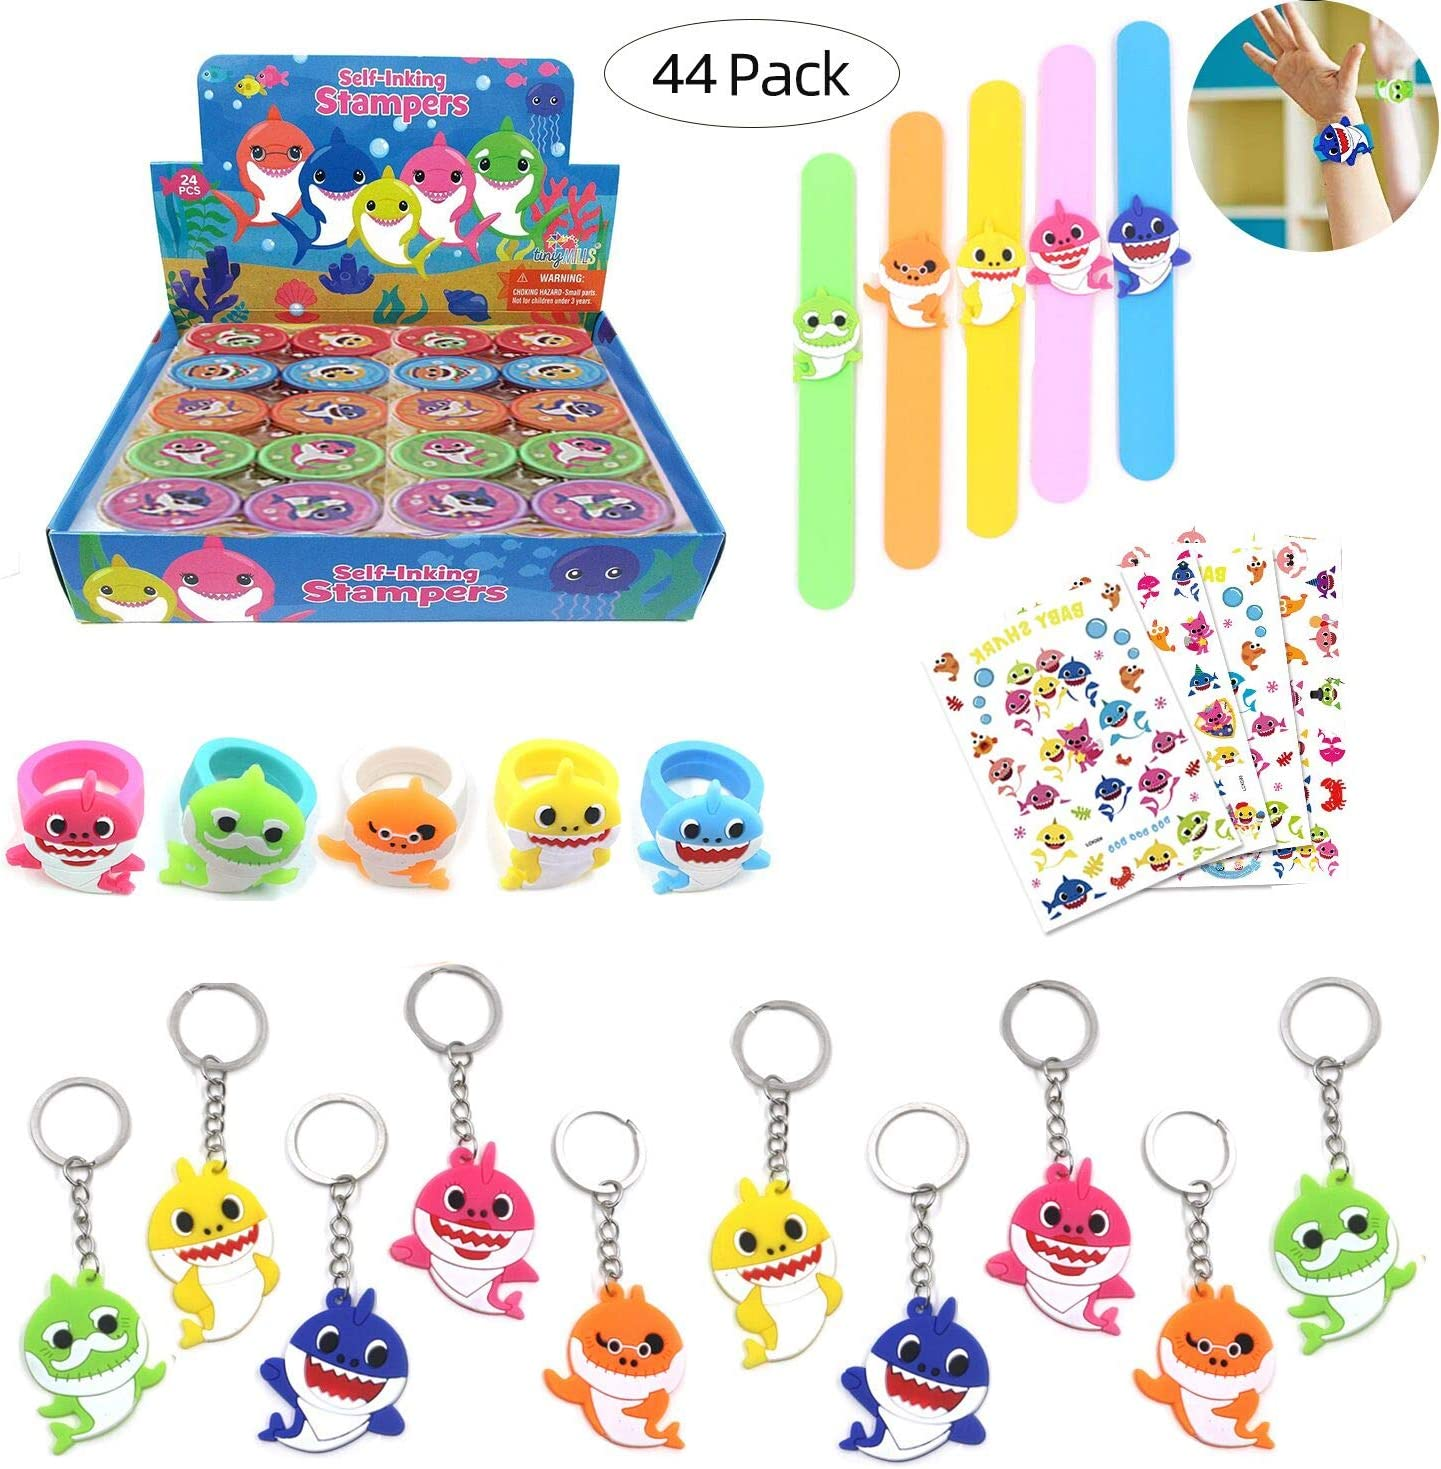 SUMMERDAYS-Shark Family Theme Party Favors for Kids -110Pcs Tatoo-20Pcs Stamper-20Pcs Rings Necklace Keychain Birthday Party Supplies